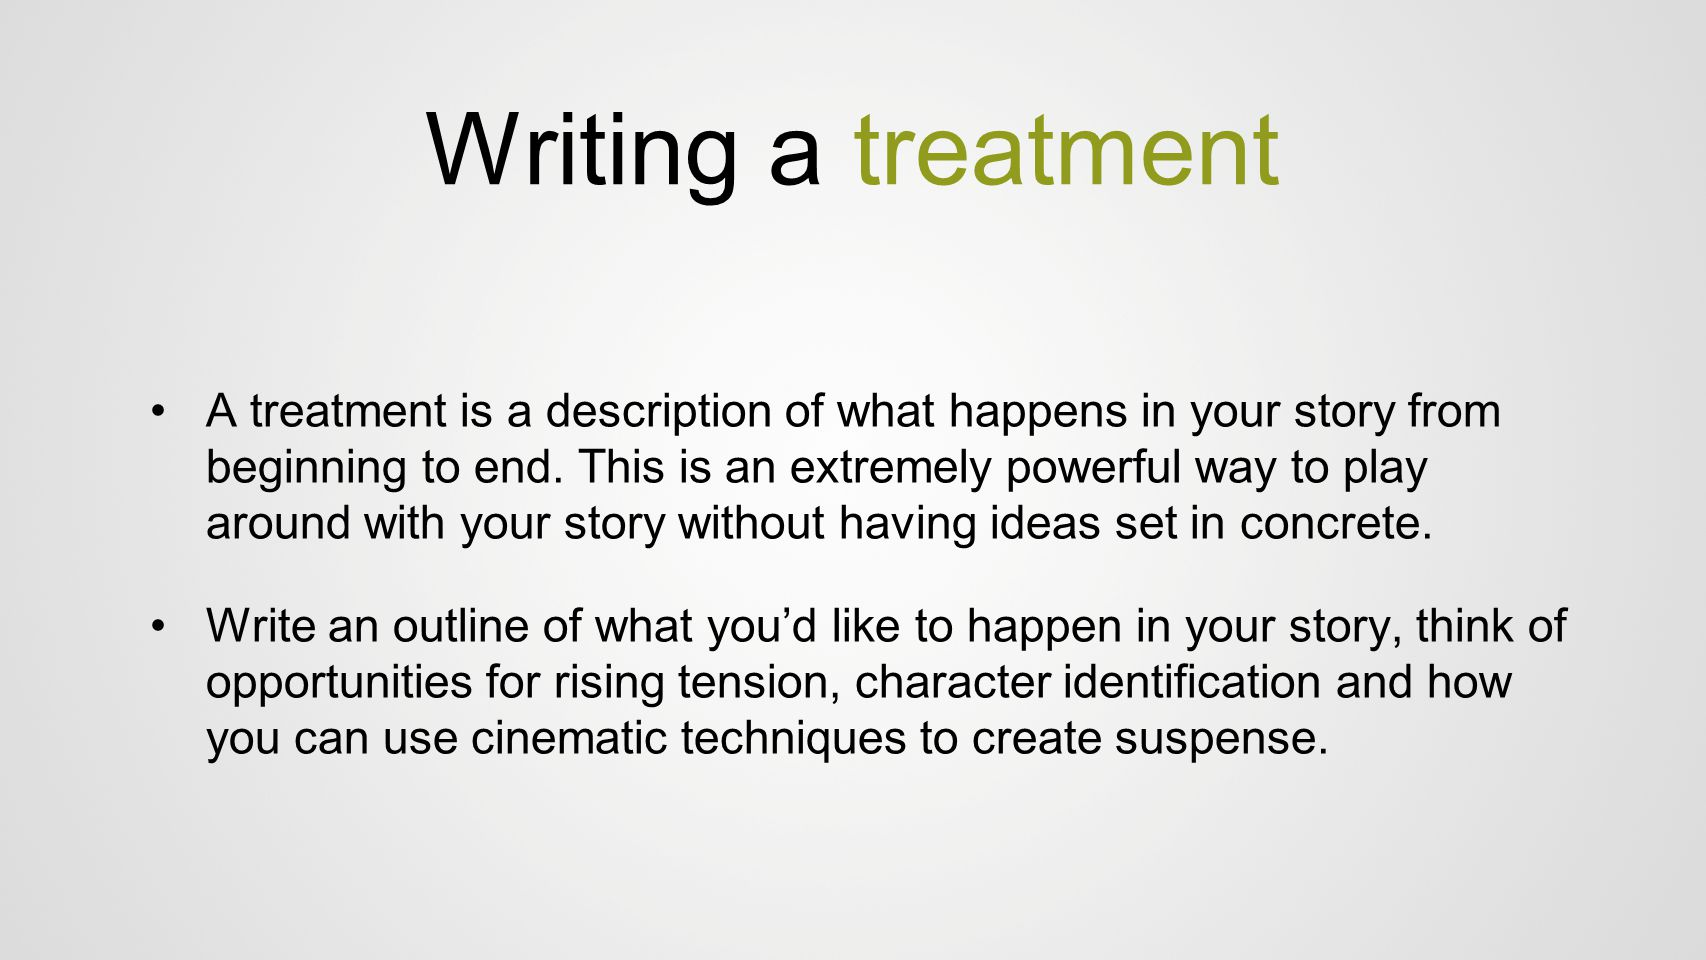 Writing a treatment A treatment is a description of what happens in your story from beginning to end. This is an extremely powerful way to play around